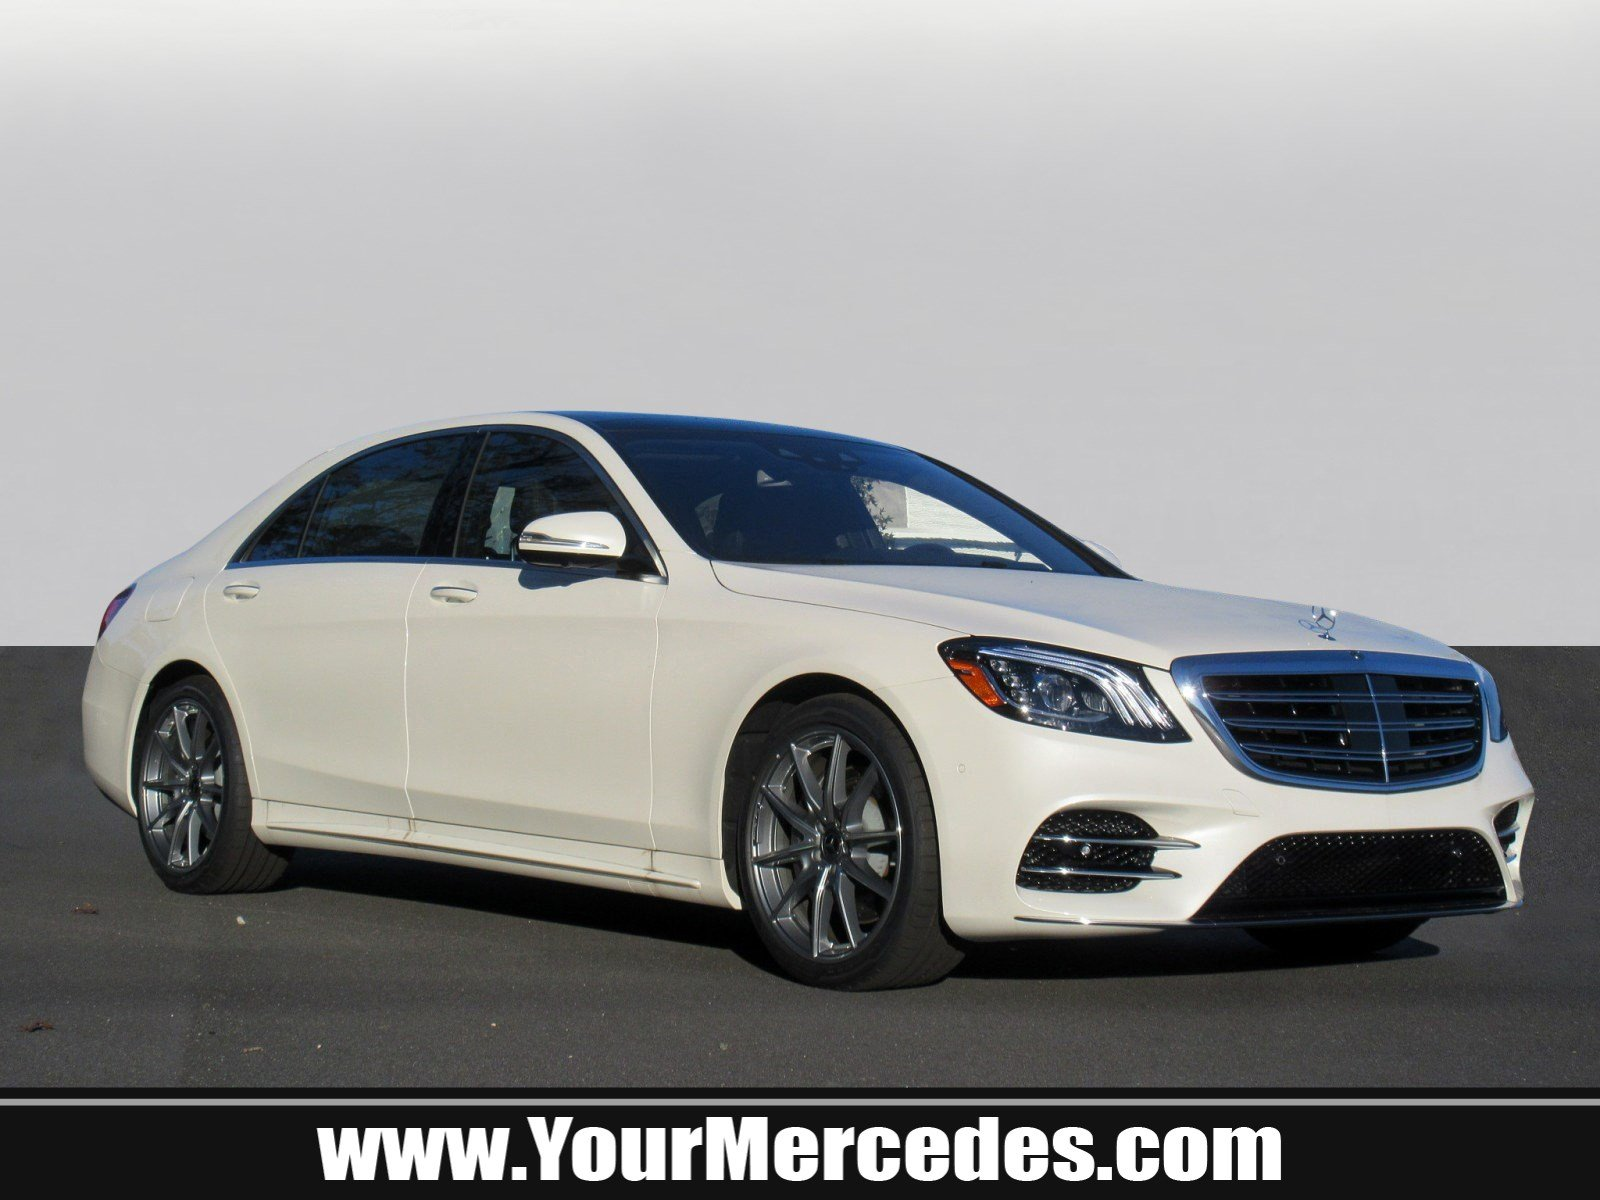 New 2019 Mercedes Benz S Class S 560 SEDAN in Egg Harbor Township